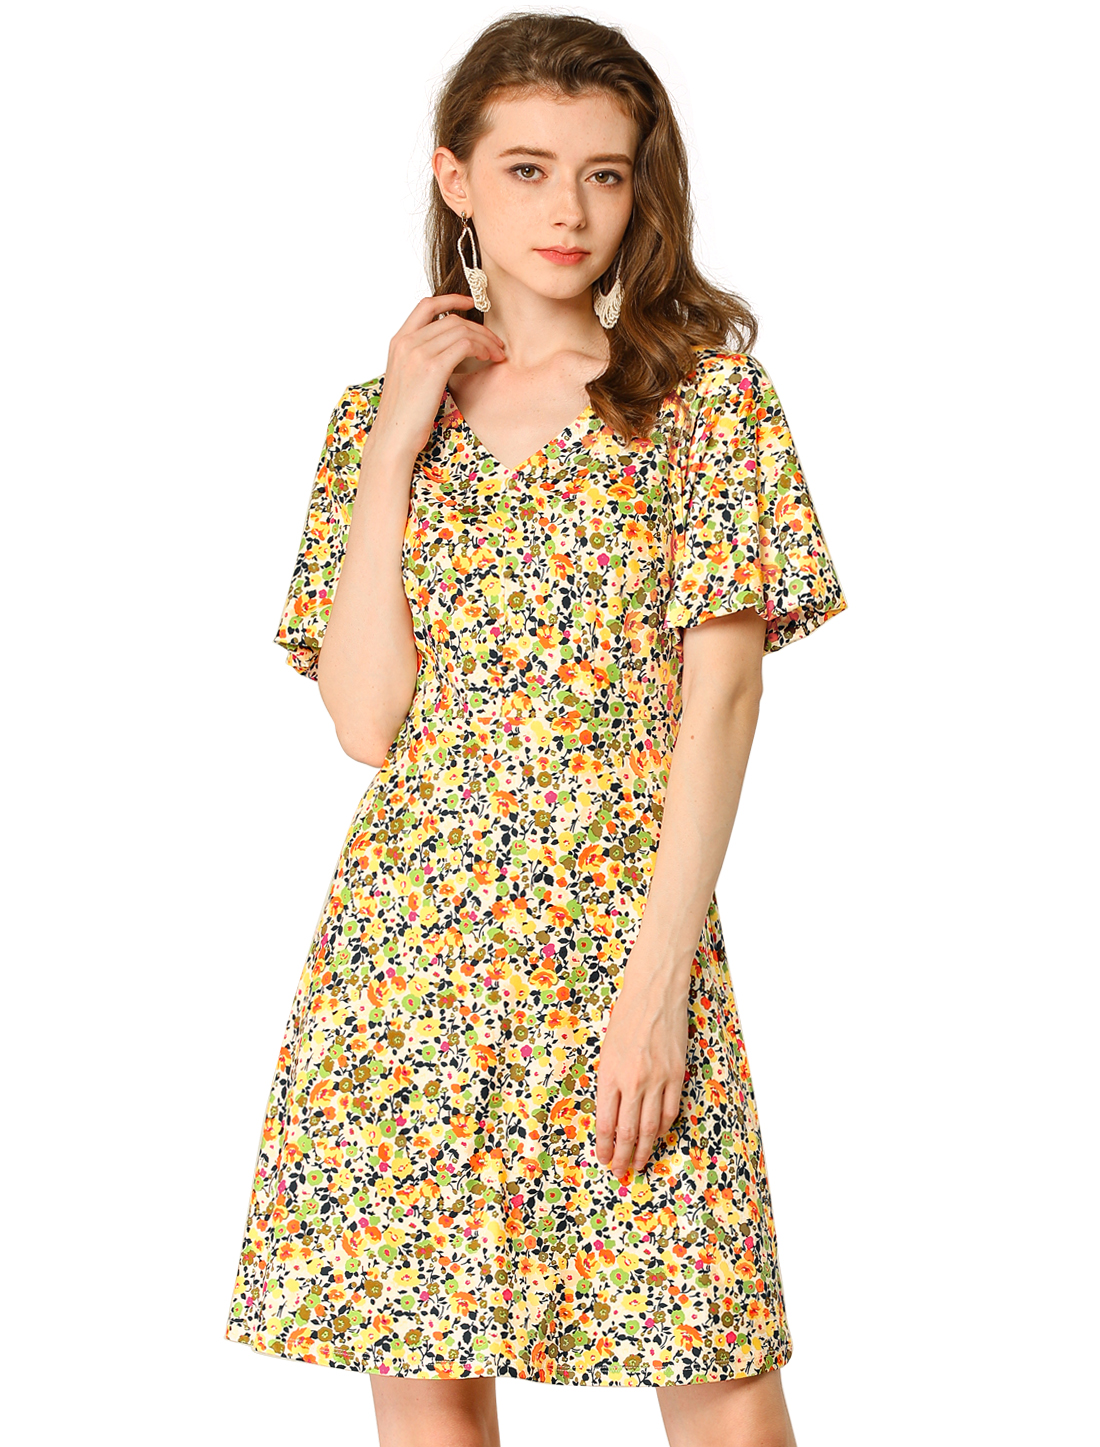 Allegra K Women/'s Boho Floral Shore Sleeve V Neck A Line Dress